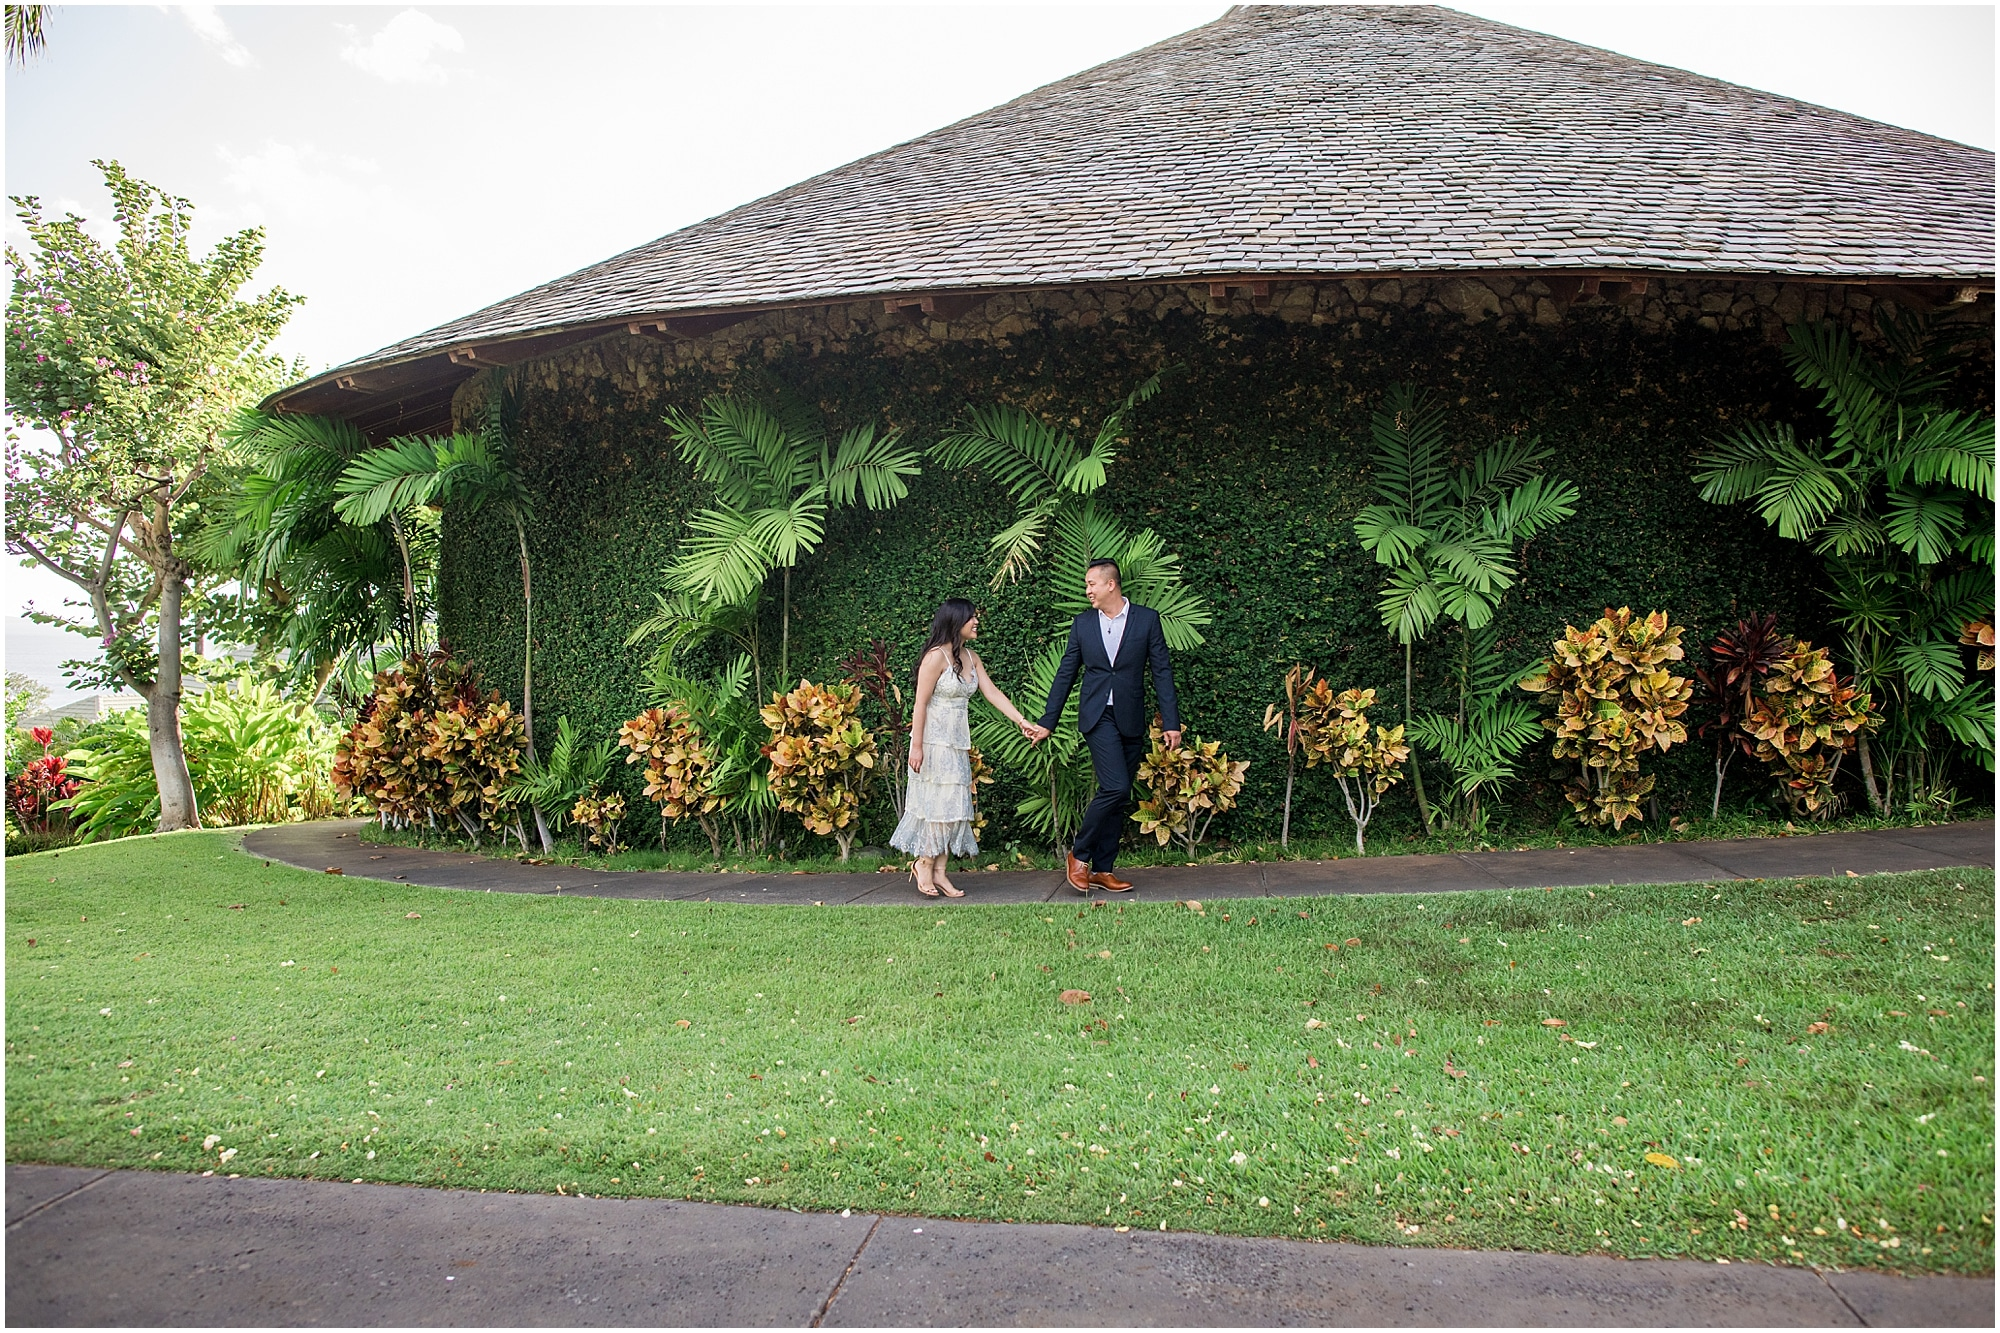 Engagement session at Hotel Wailea after proposal at the treehouse